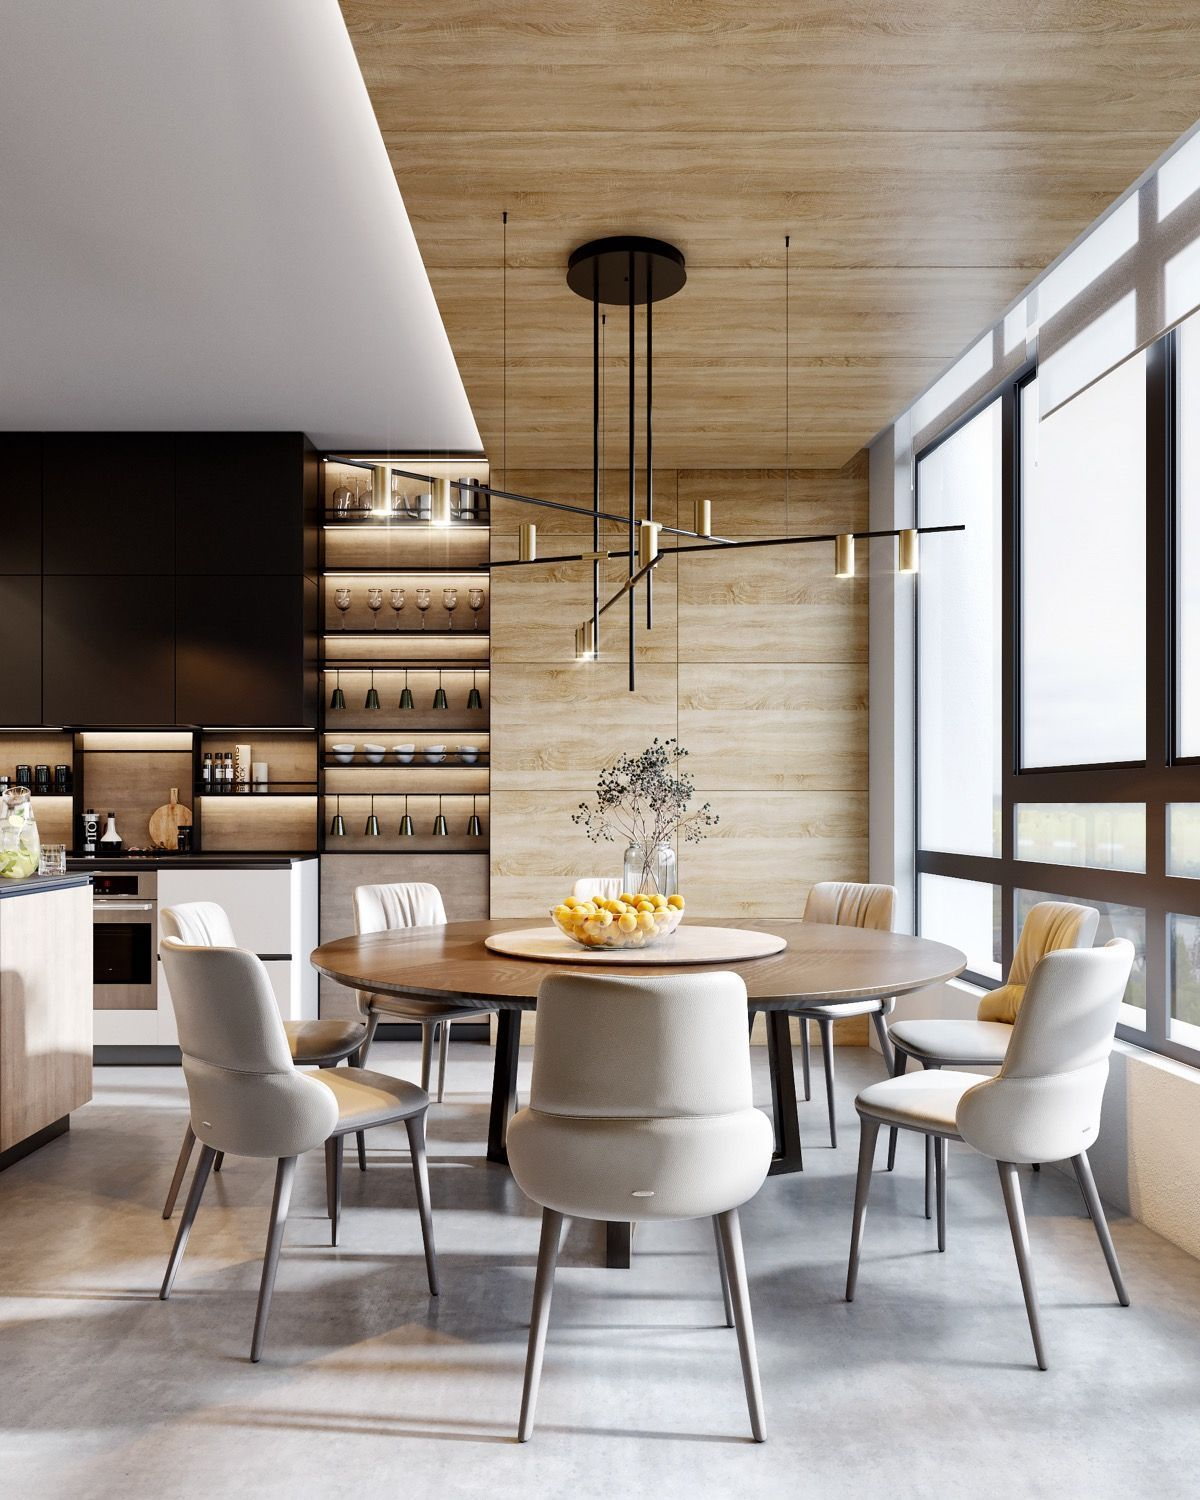 56 Kitchen Dining Room Design Ideas That Are Convenient For Eating